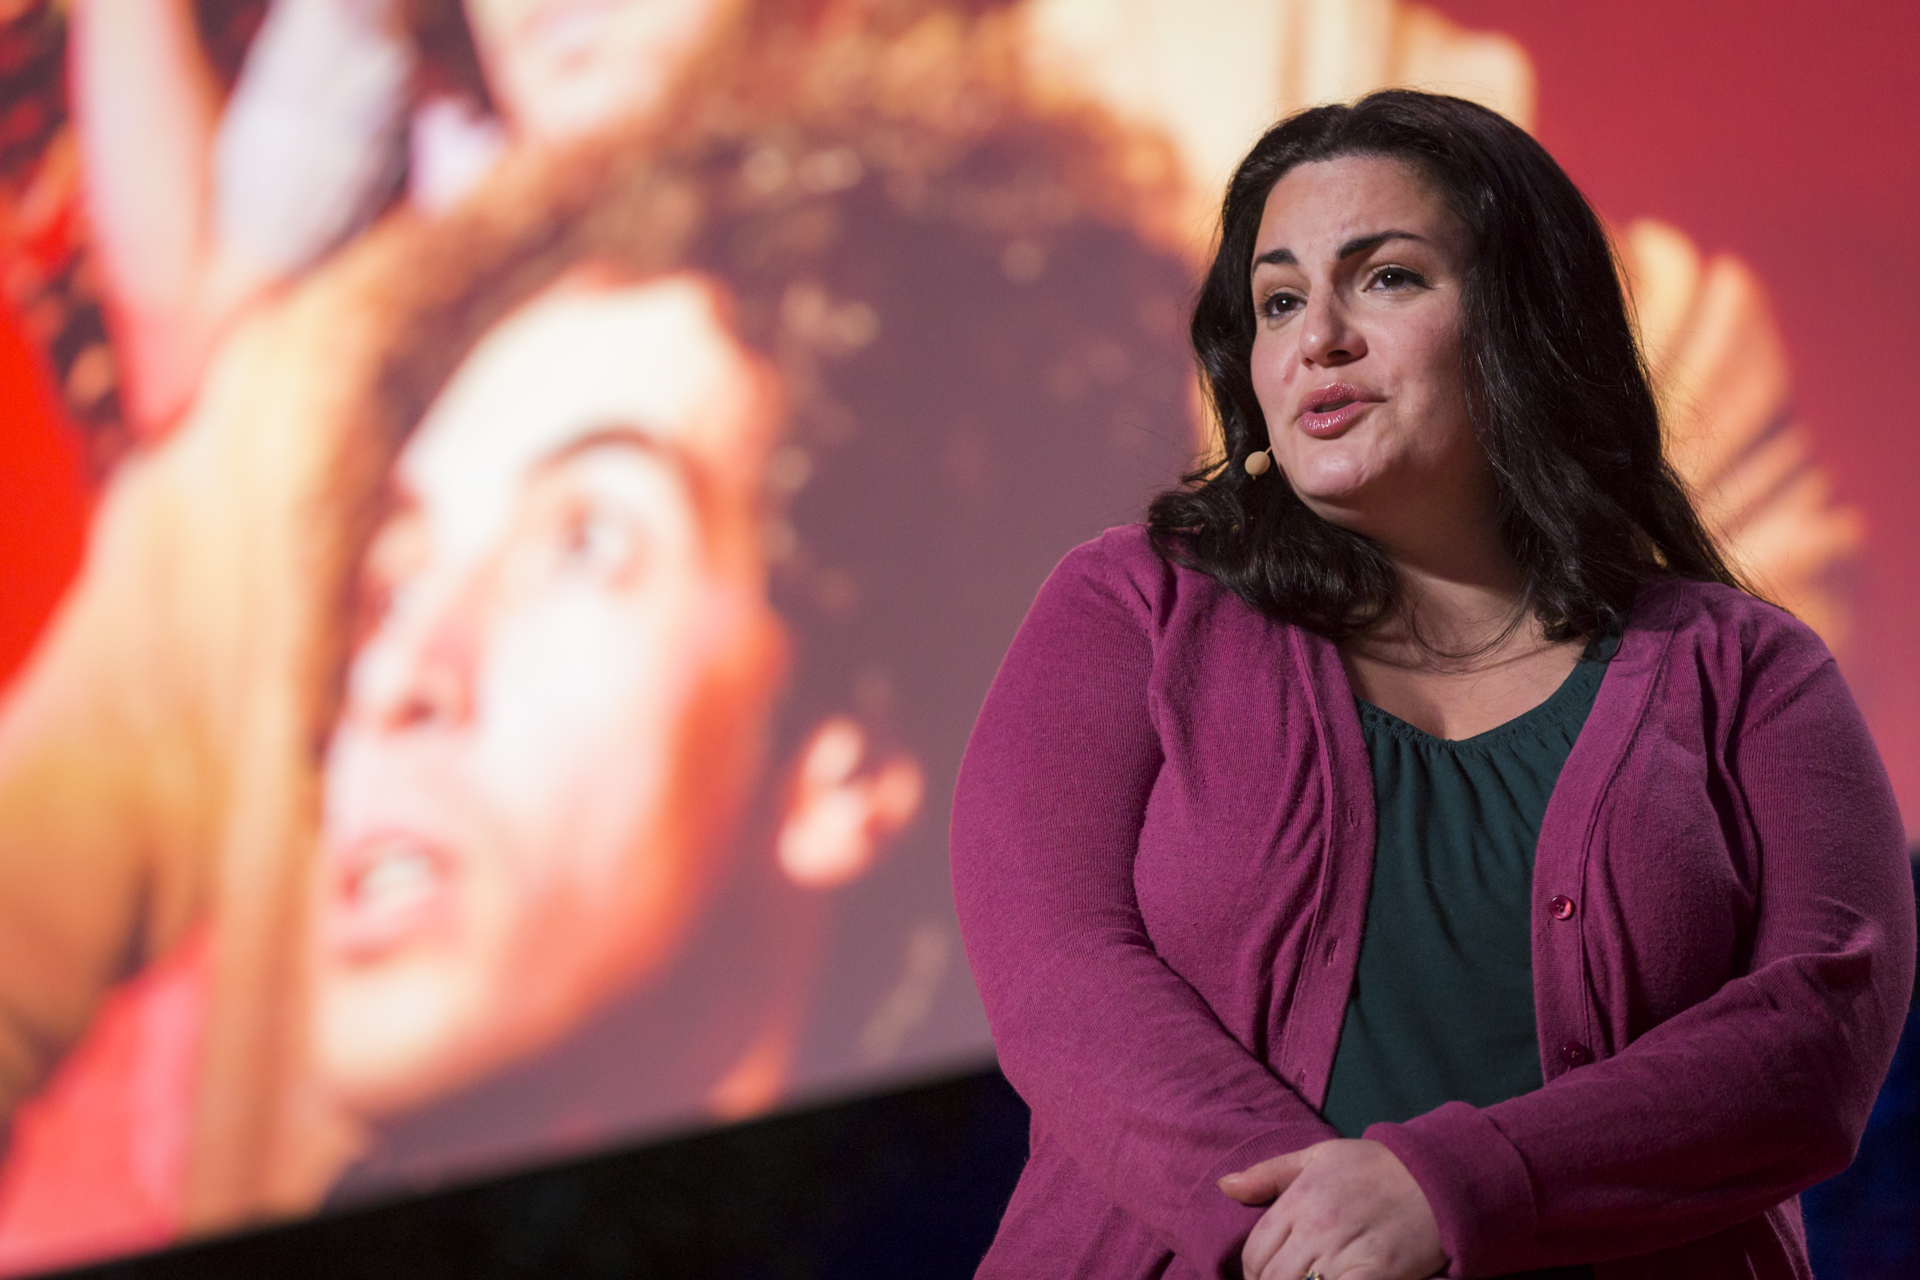 Jennifer Mascia, the daughter of a convicted Mafia gunman, explains the importance of reporting on—and stopping—gun violence. Photo: Ryan Lash/TED